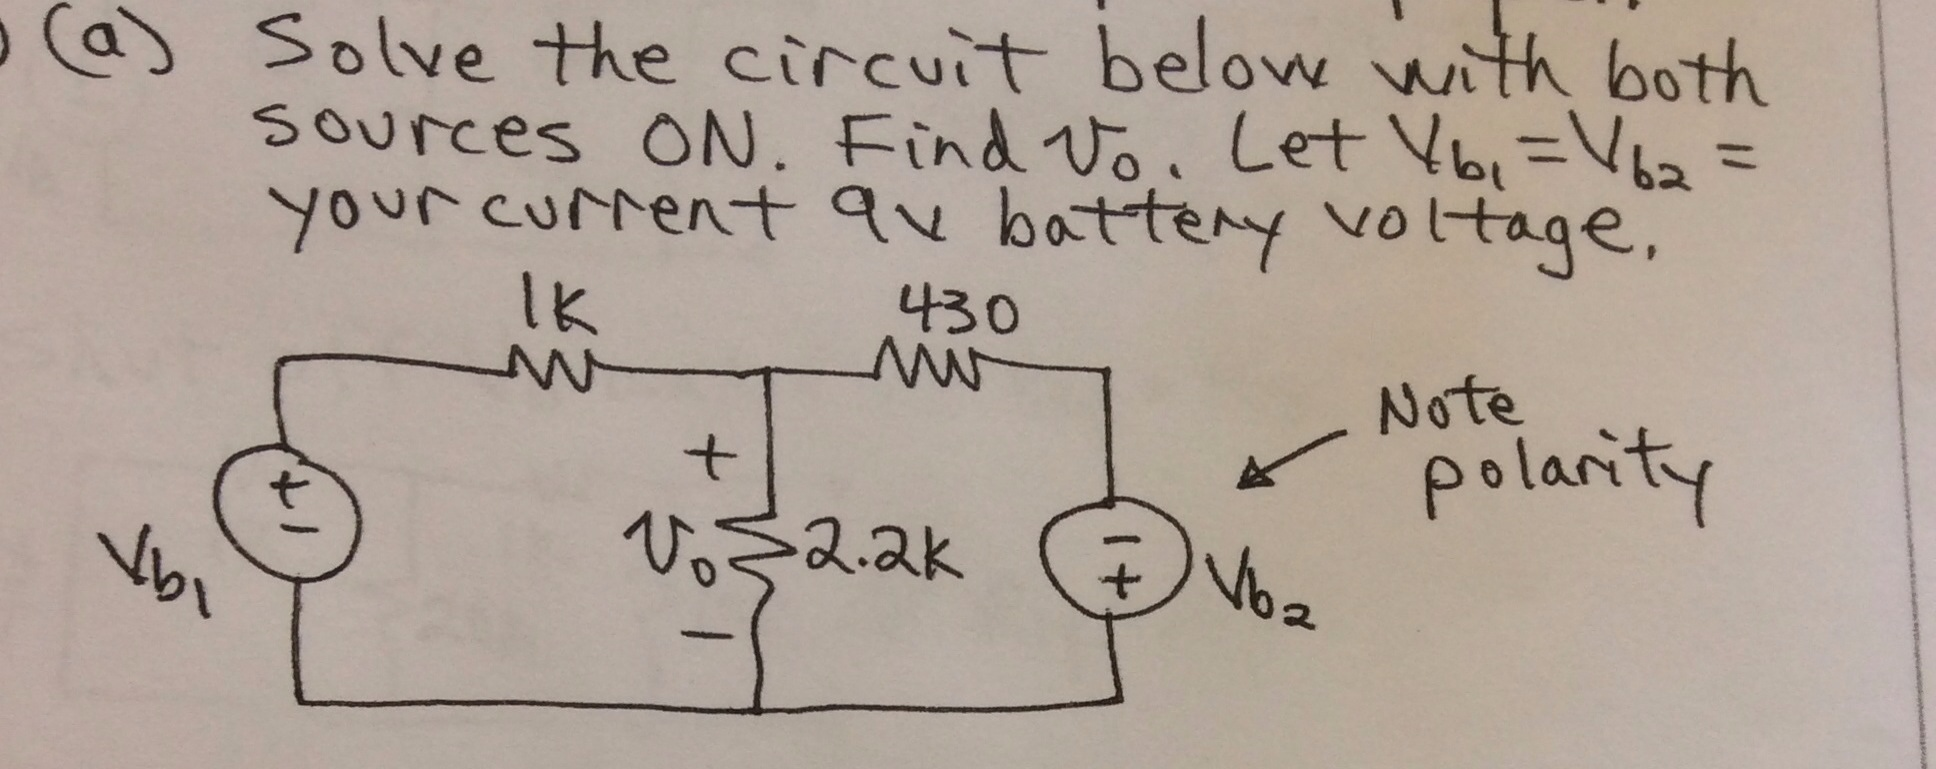 Solve the circuit below with both sources ON. Find